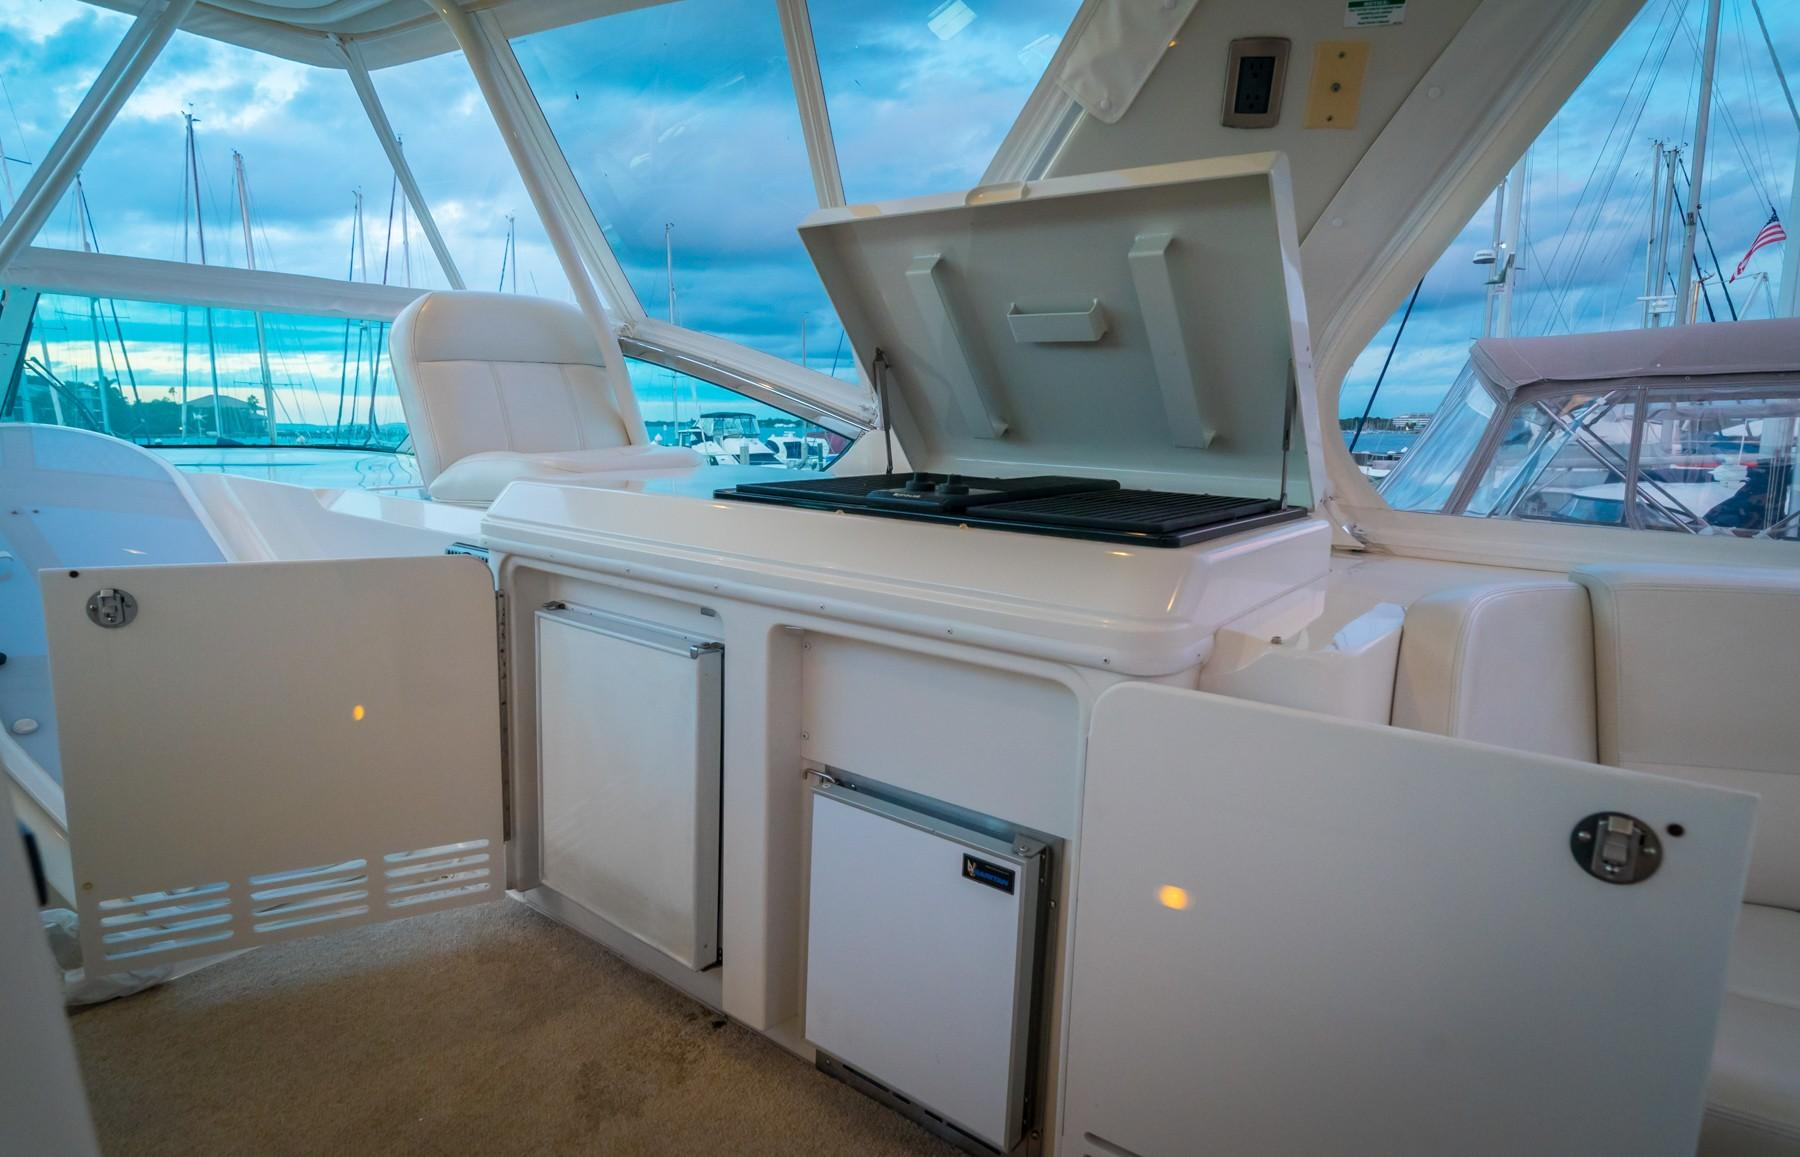 Bridge Cooking Station, Grill, Ice Maker, Extra Refrigerator